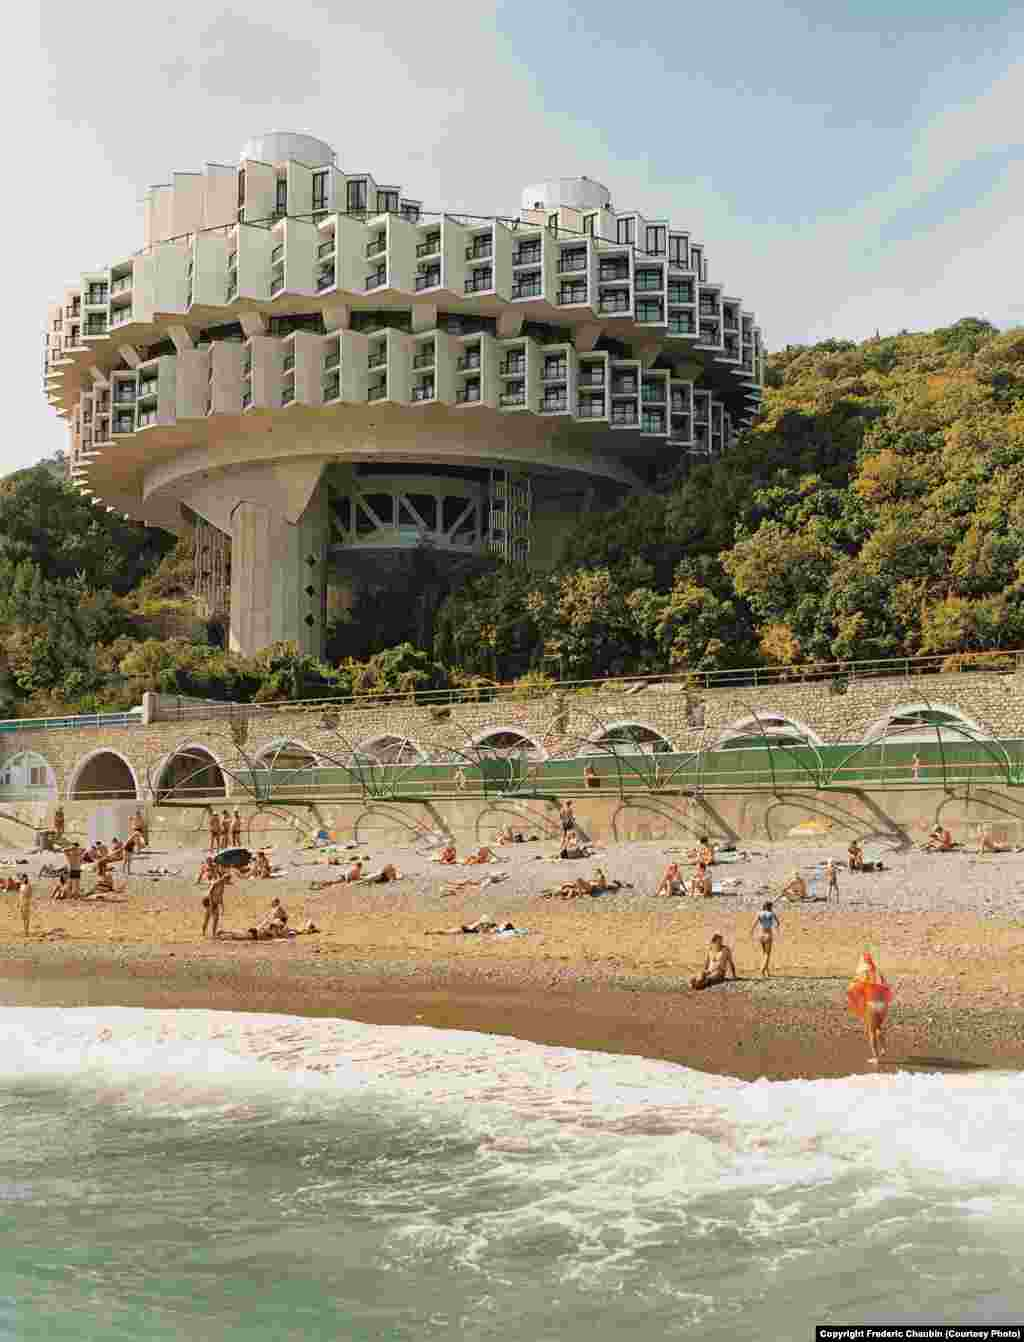 "The Druzhba sanatorium in Yalta, Ukraine, designed by Igor Vasilevsky and Yuriy Stefanchuk and dating from 1985. ""What is fascinating is to realize that basically the trends -- the intellectual main trends -- that were going through East and West were the same,"" Chaubin said. ""East and West at the same time were worshipping the future. This is the very end of modernism in some way. ""Right now, we're totally frightened by the future. But at that time, there was still a very optimistic perspective. And you can feel it with the architecture. There was this idea that the future would bring something better."""